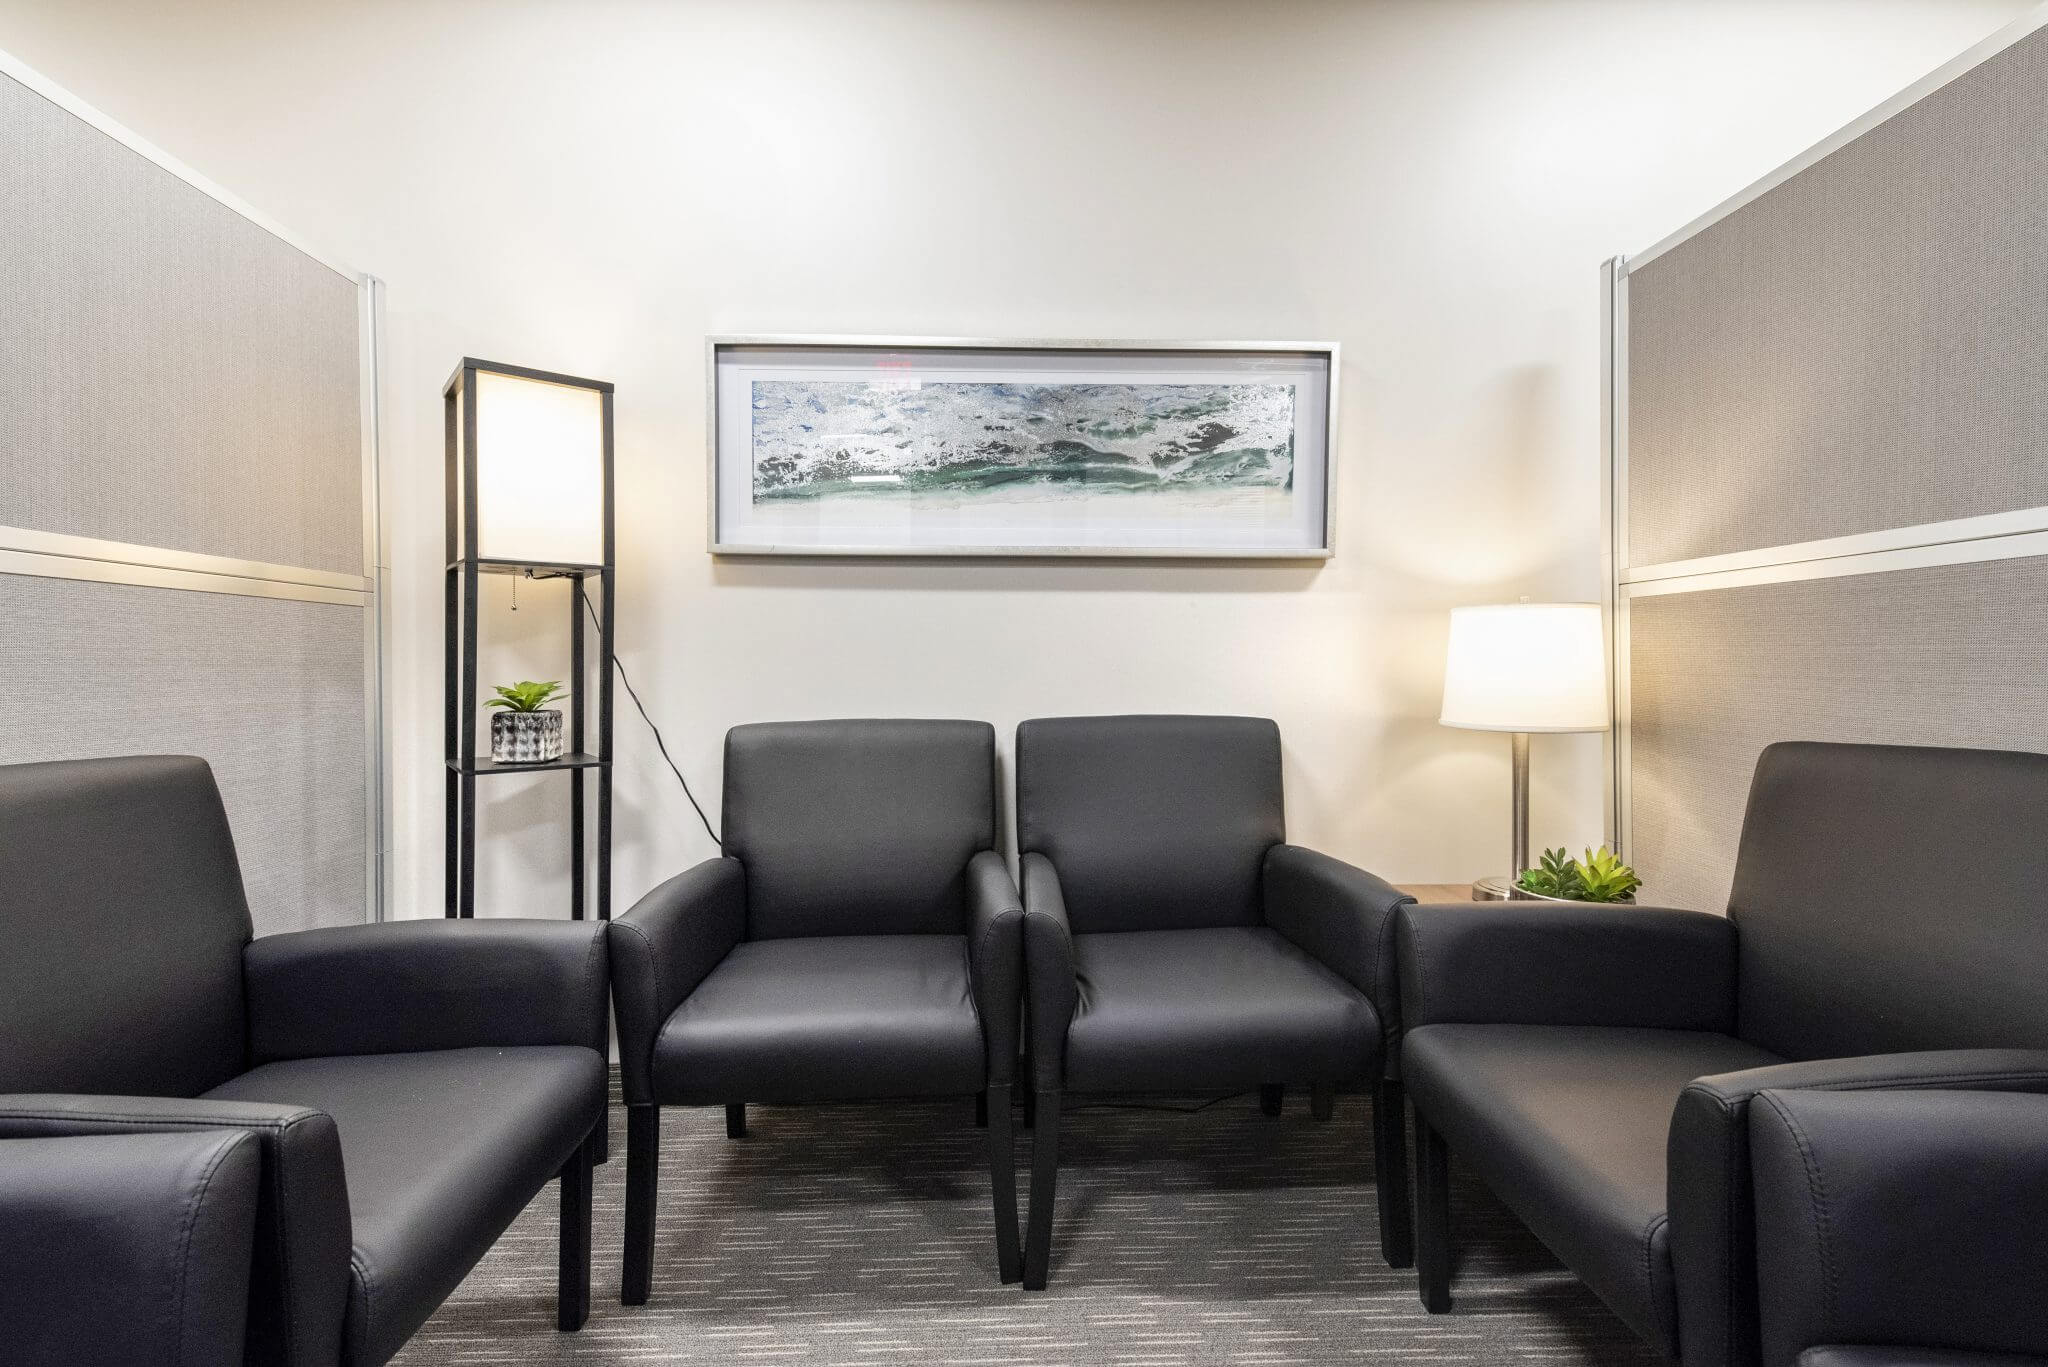 Glpg Great Lakes Psychology Group Counseling Therapy Schaumburg Illinois Chairs